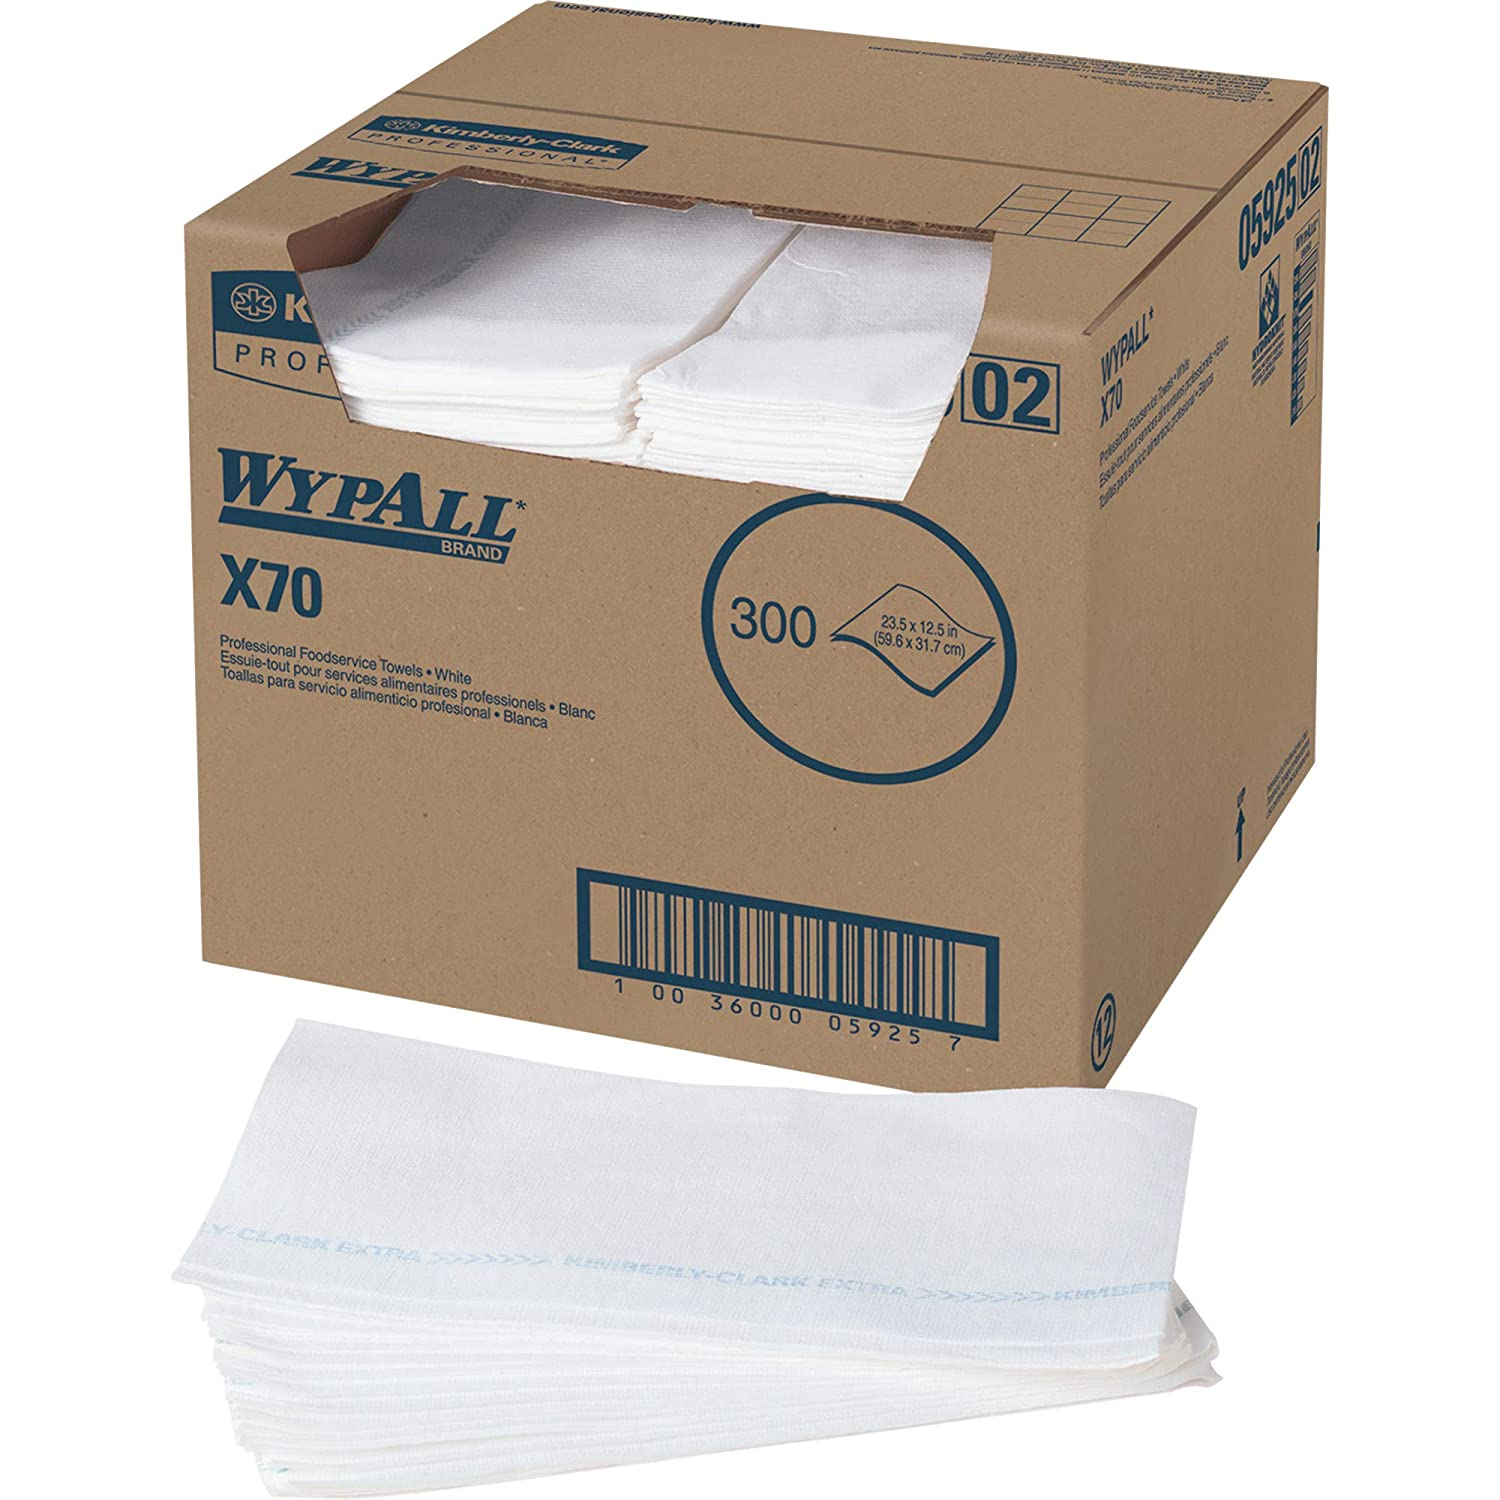 WypAll 05925 X70 Wipers, Kimfresh Antimicrobial, 12 1/2 x 23 1/2, White (Box of 300)